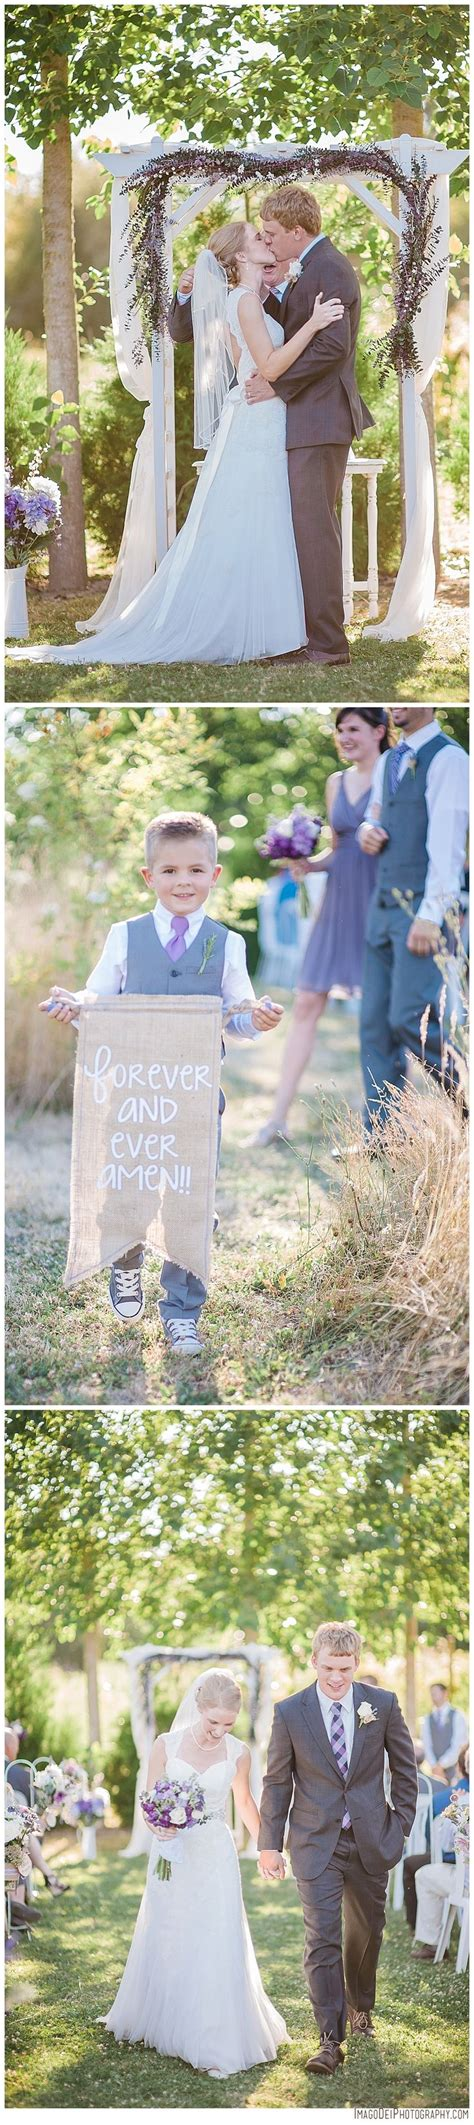 1000 ideas about ring bearer outfit on pinterest boys